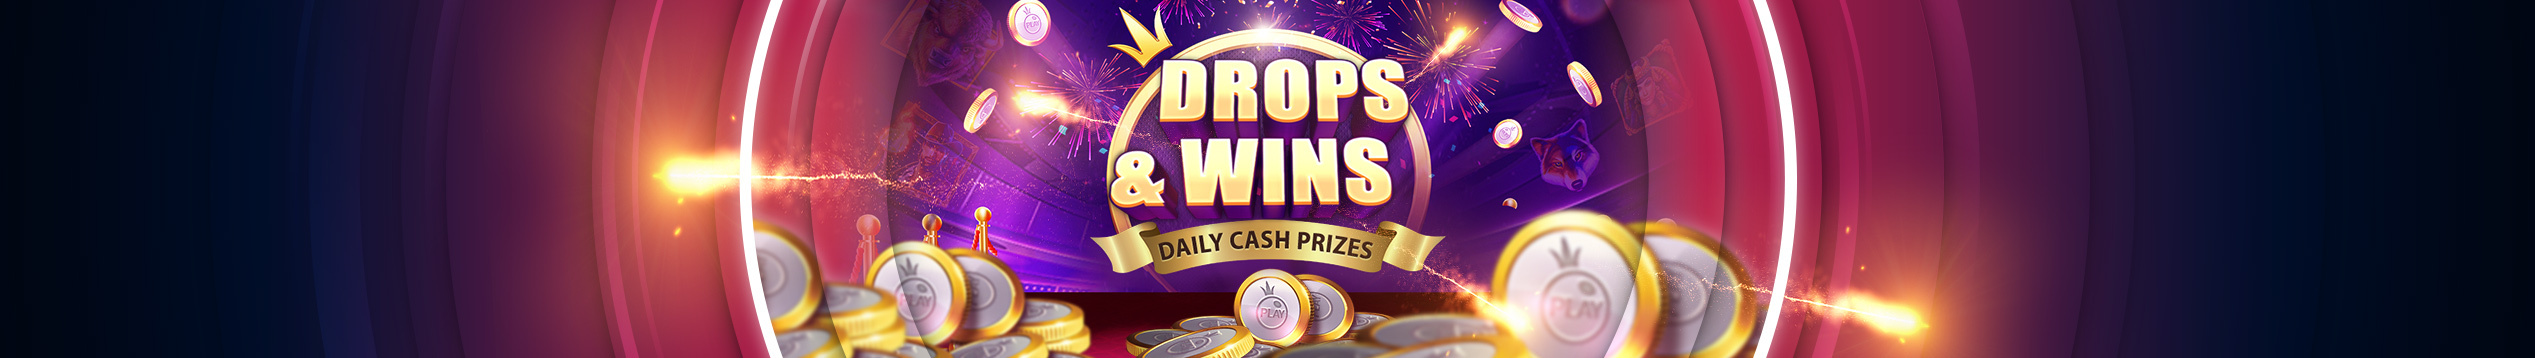 £2,000,000 DAILY DROPS & WINS